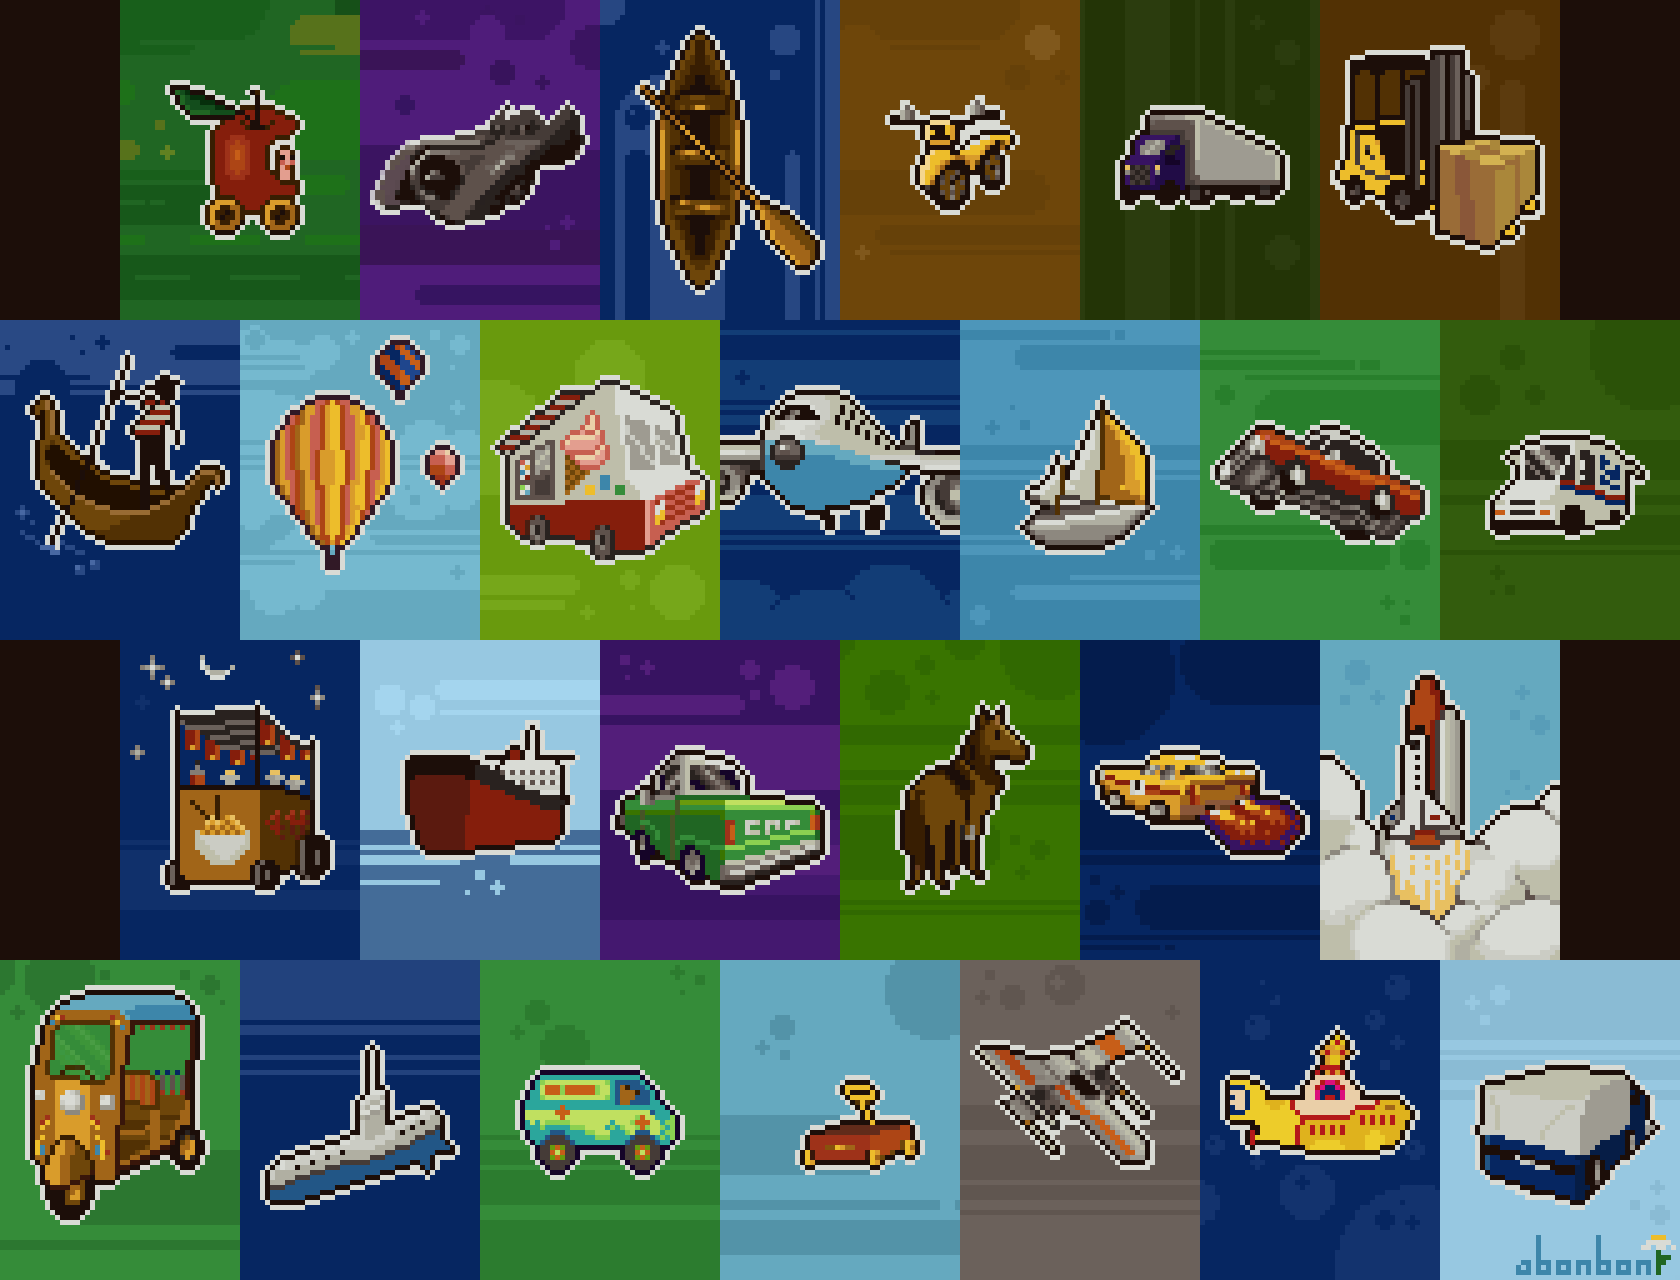 abcdailies Vehicles Pixel Art Collage by Bonnie K Thompson